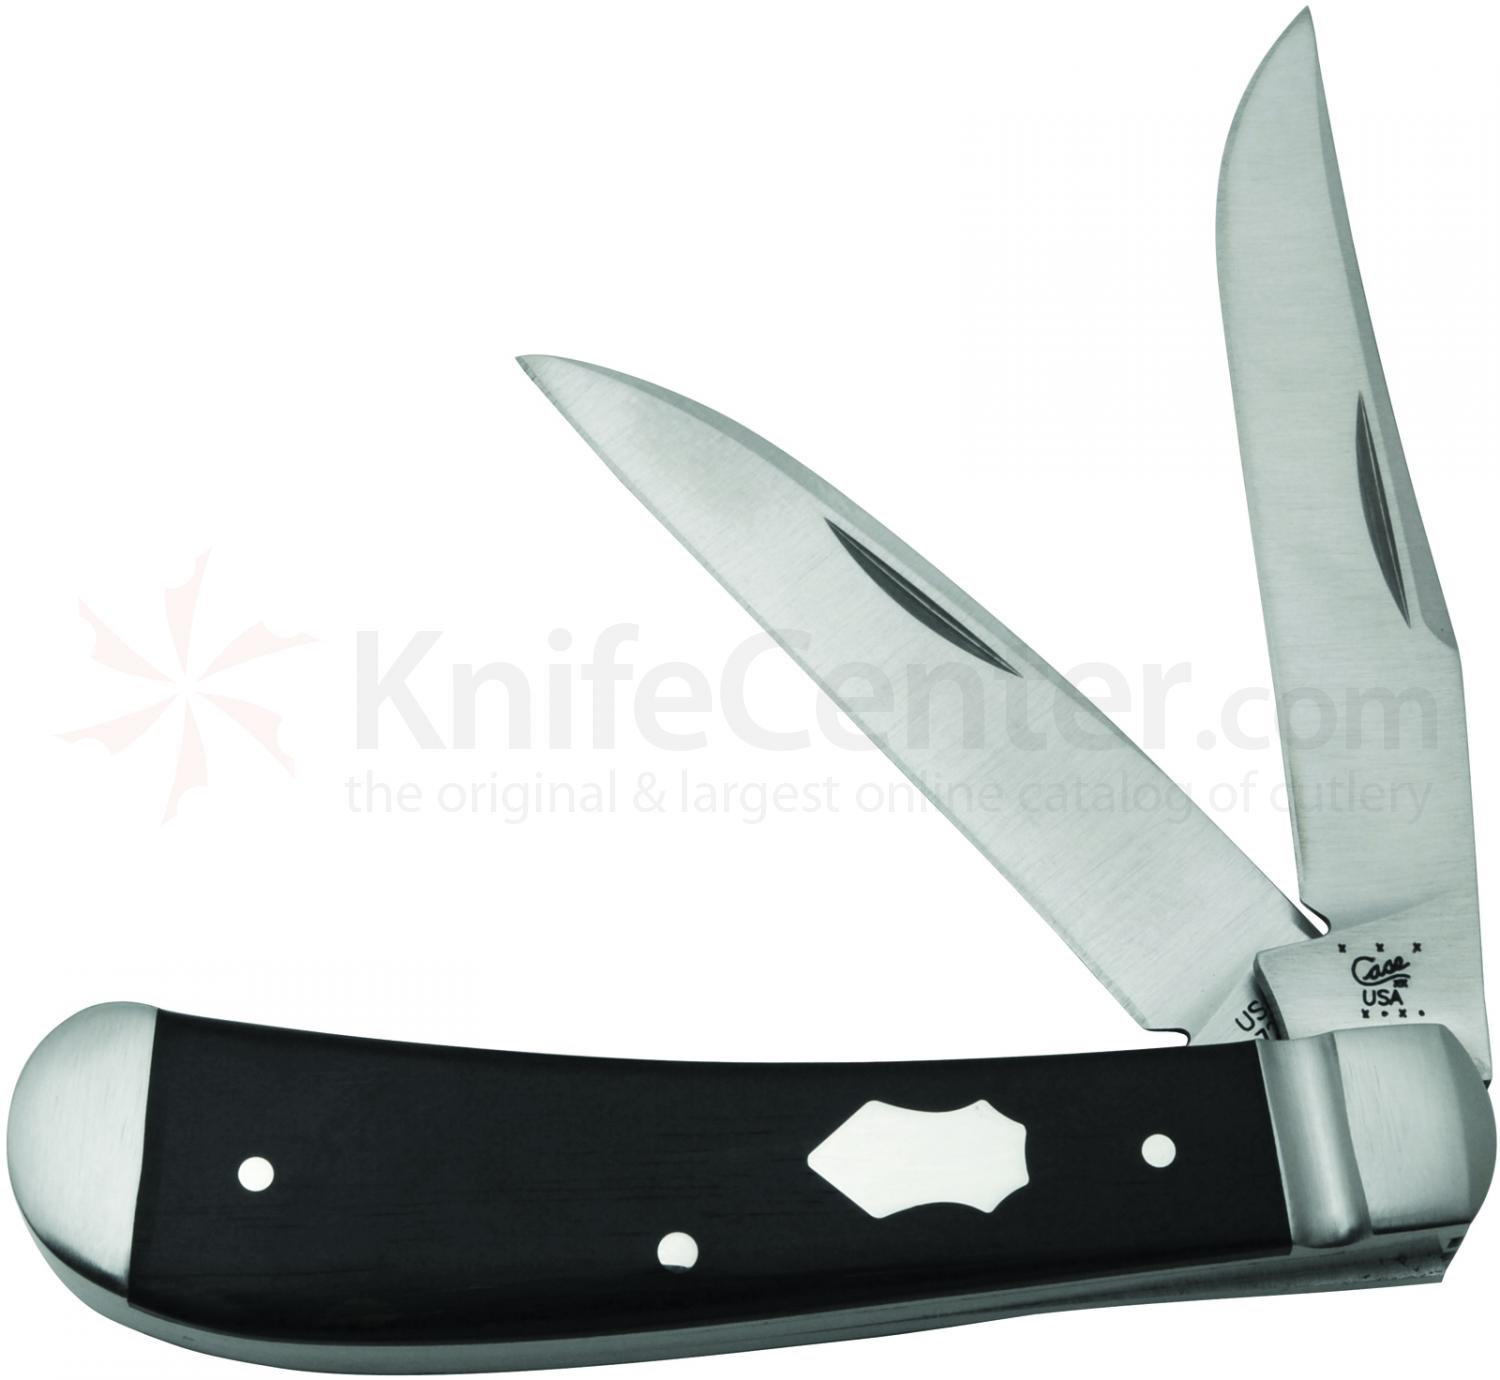 Case Tony Bose Smooth Ebony Wood Wharncliffe Trapper 3-5/8 inch Closed (TB722013 154-CM)